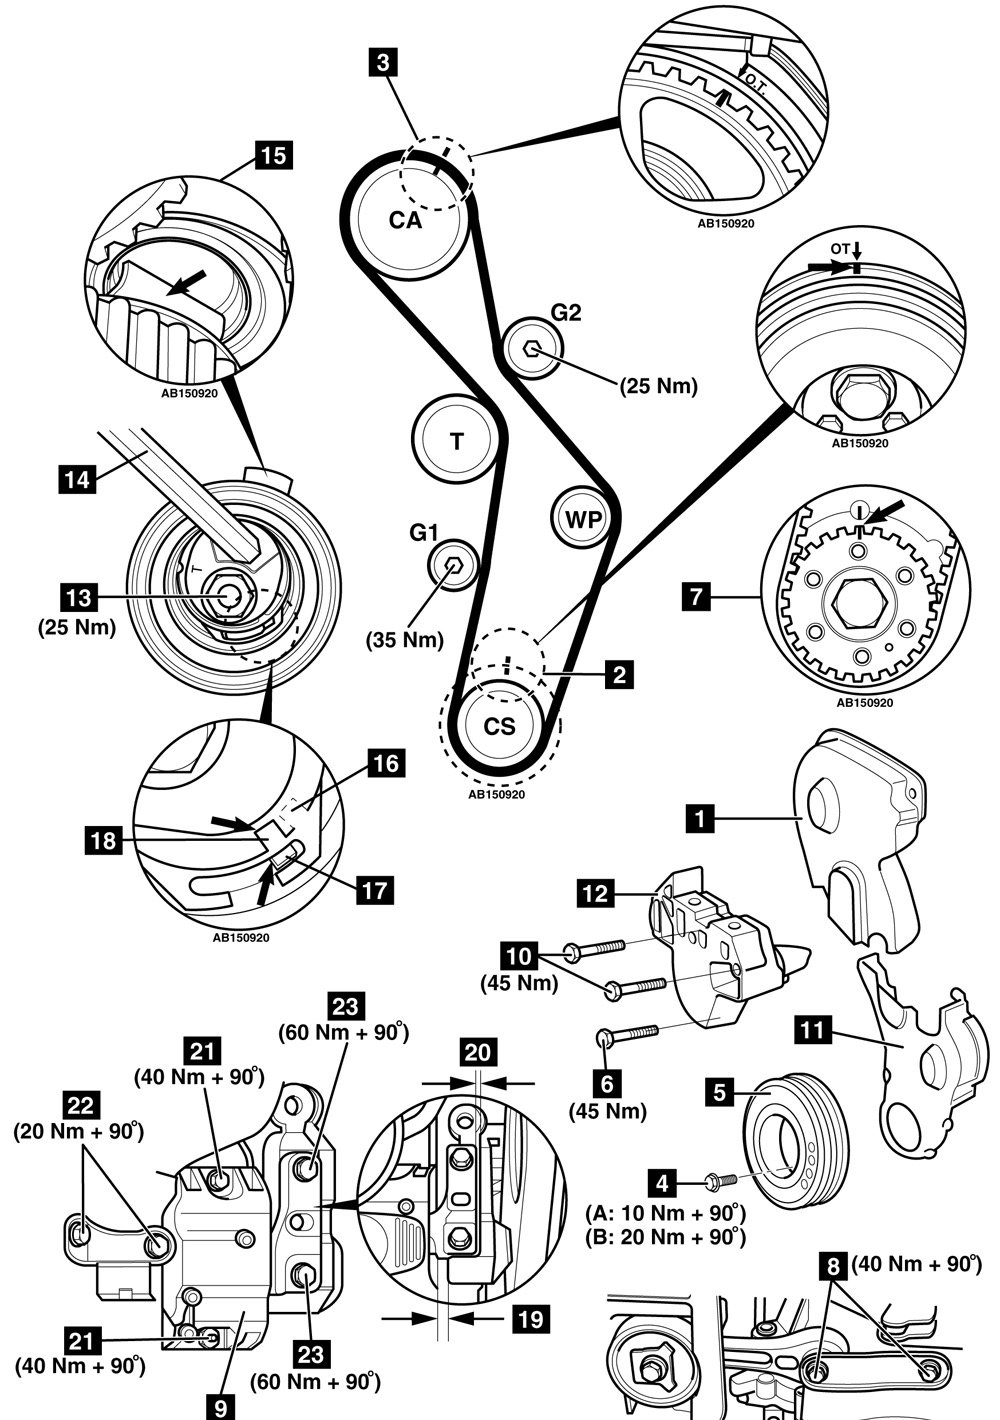 Passat Timing Marks Vr6 Engine Diagram Can You Show Me The For A With 1000x1420